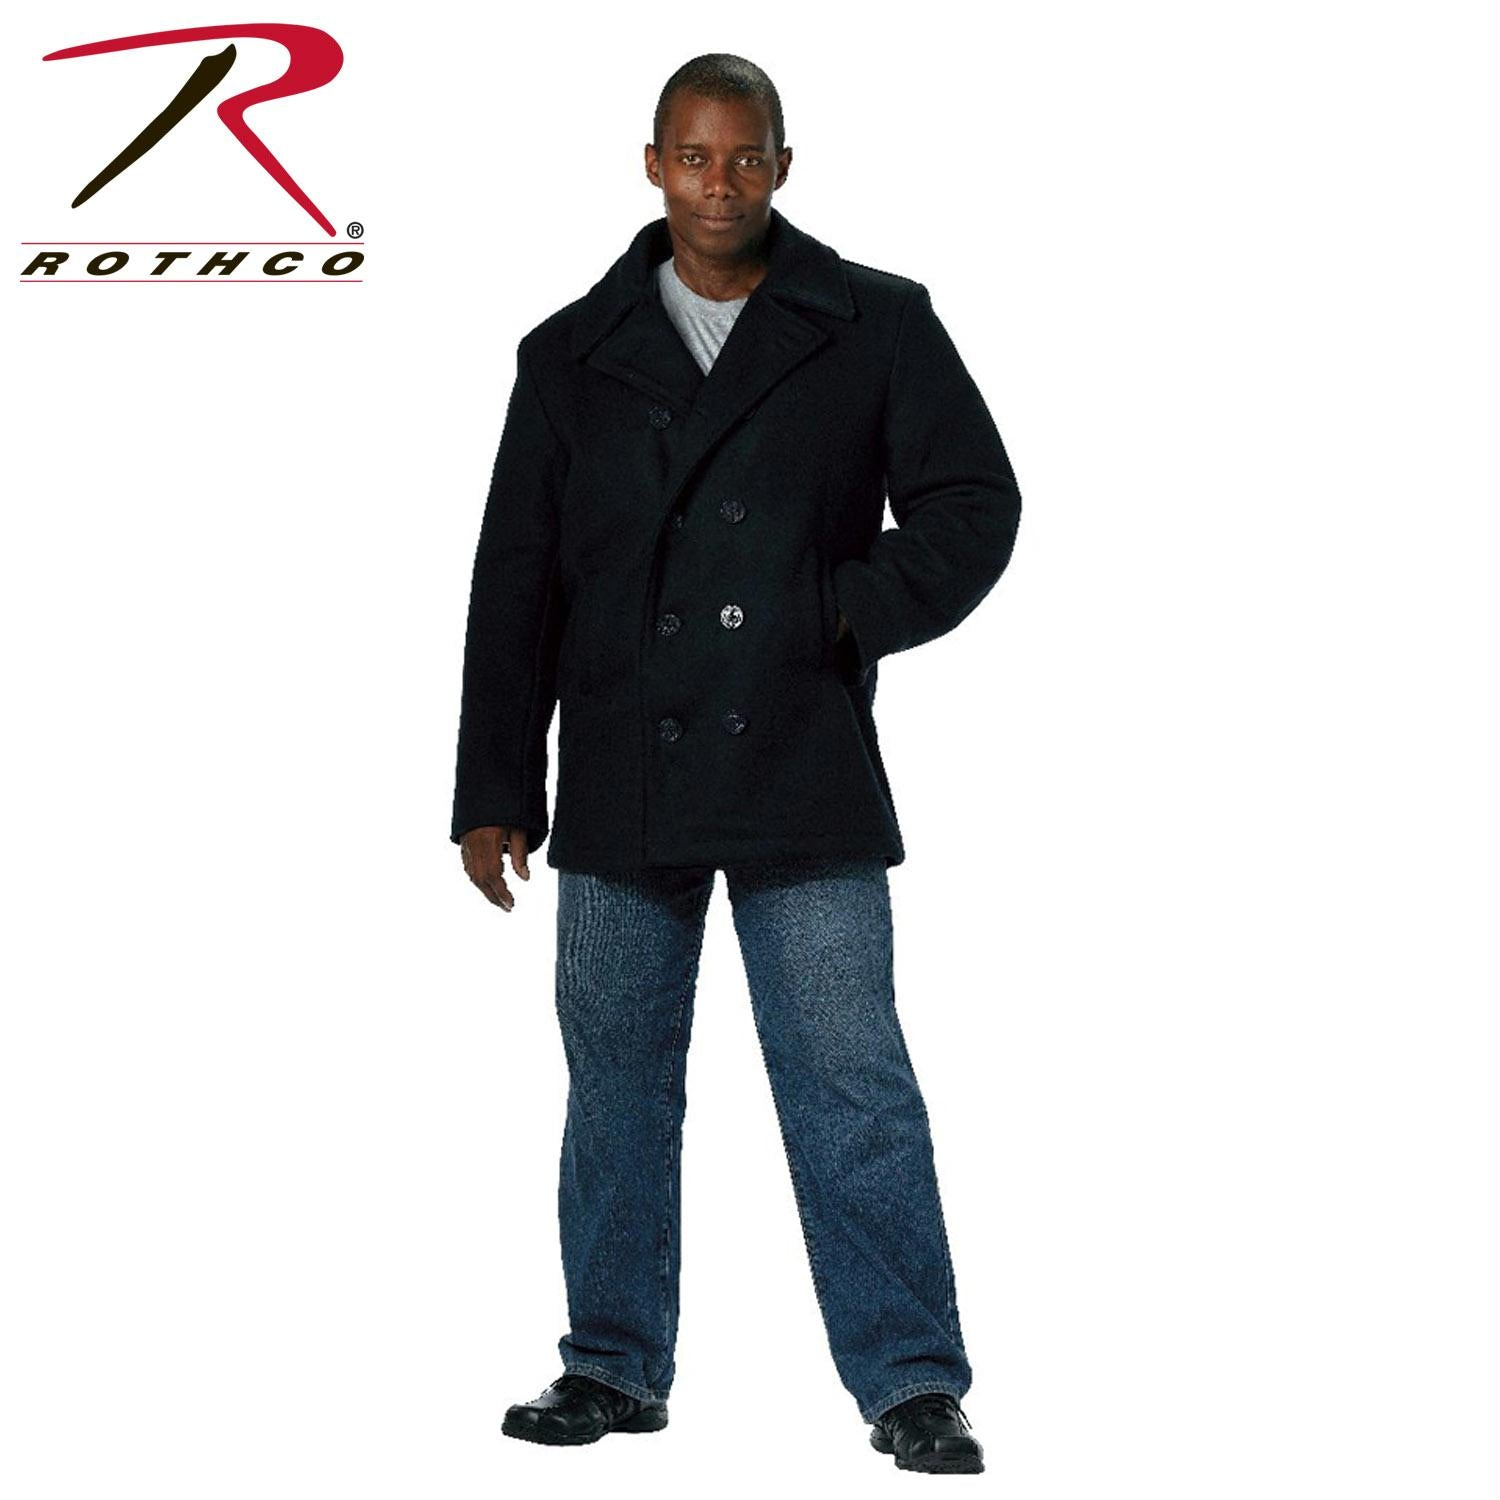 Rothco US Navy Type Pea Coat - Navy Blue / L